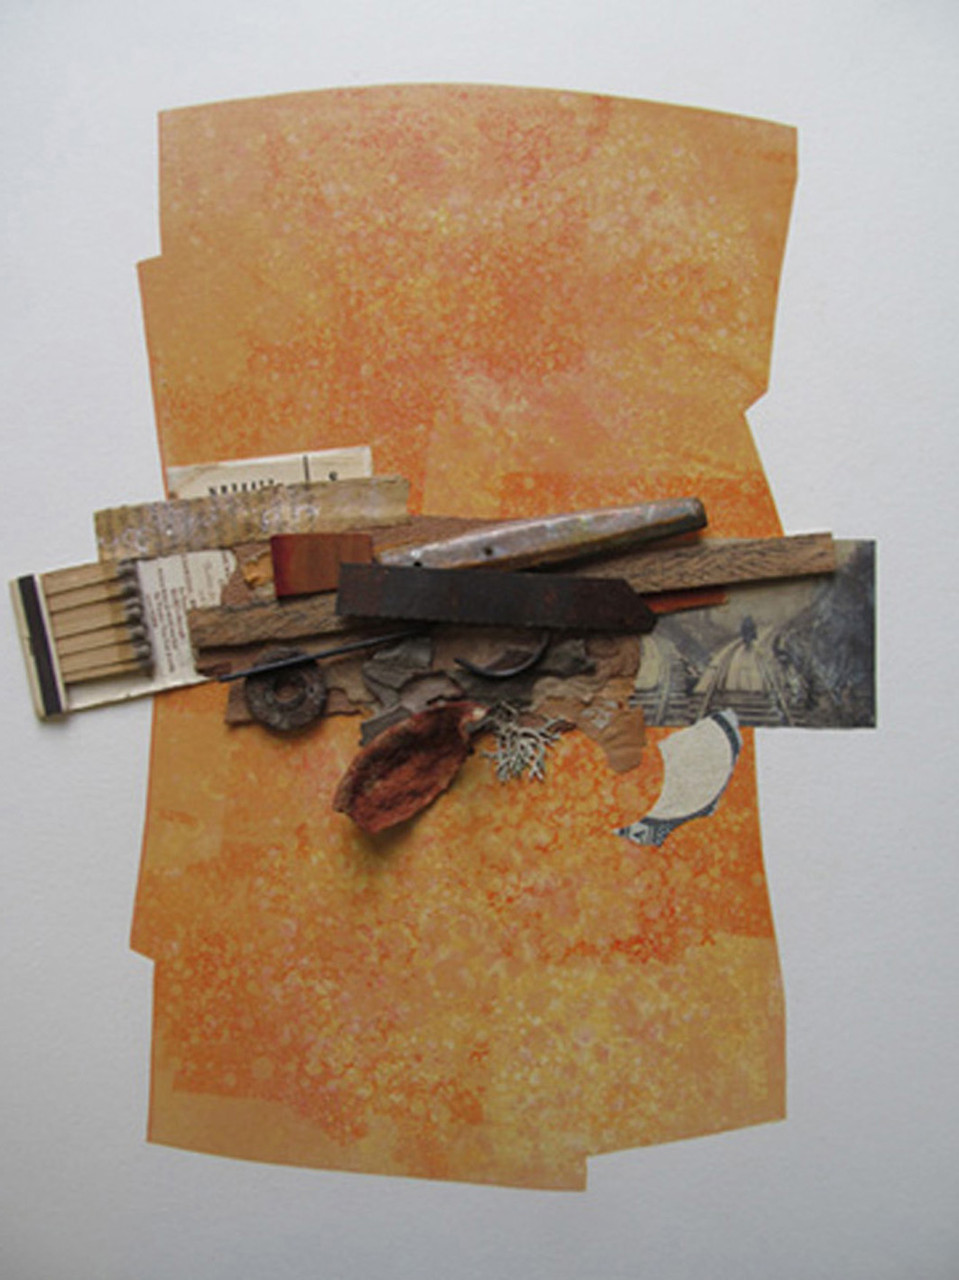 Die Reise - Monoprint-Collage -  50x60 cm in 6 parts